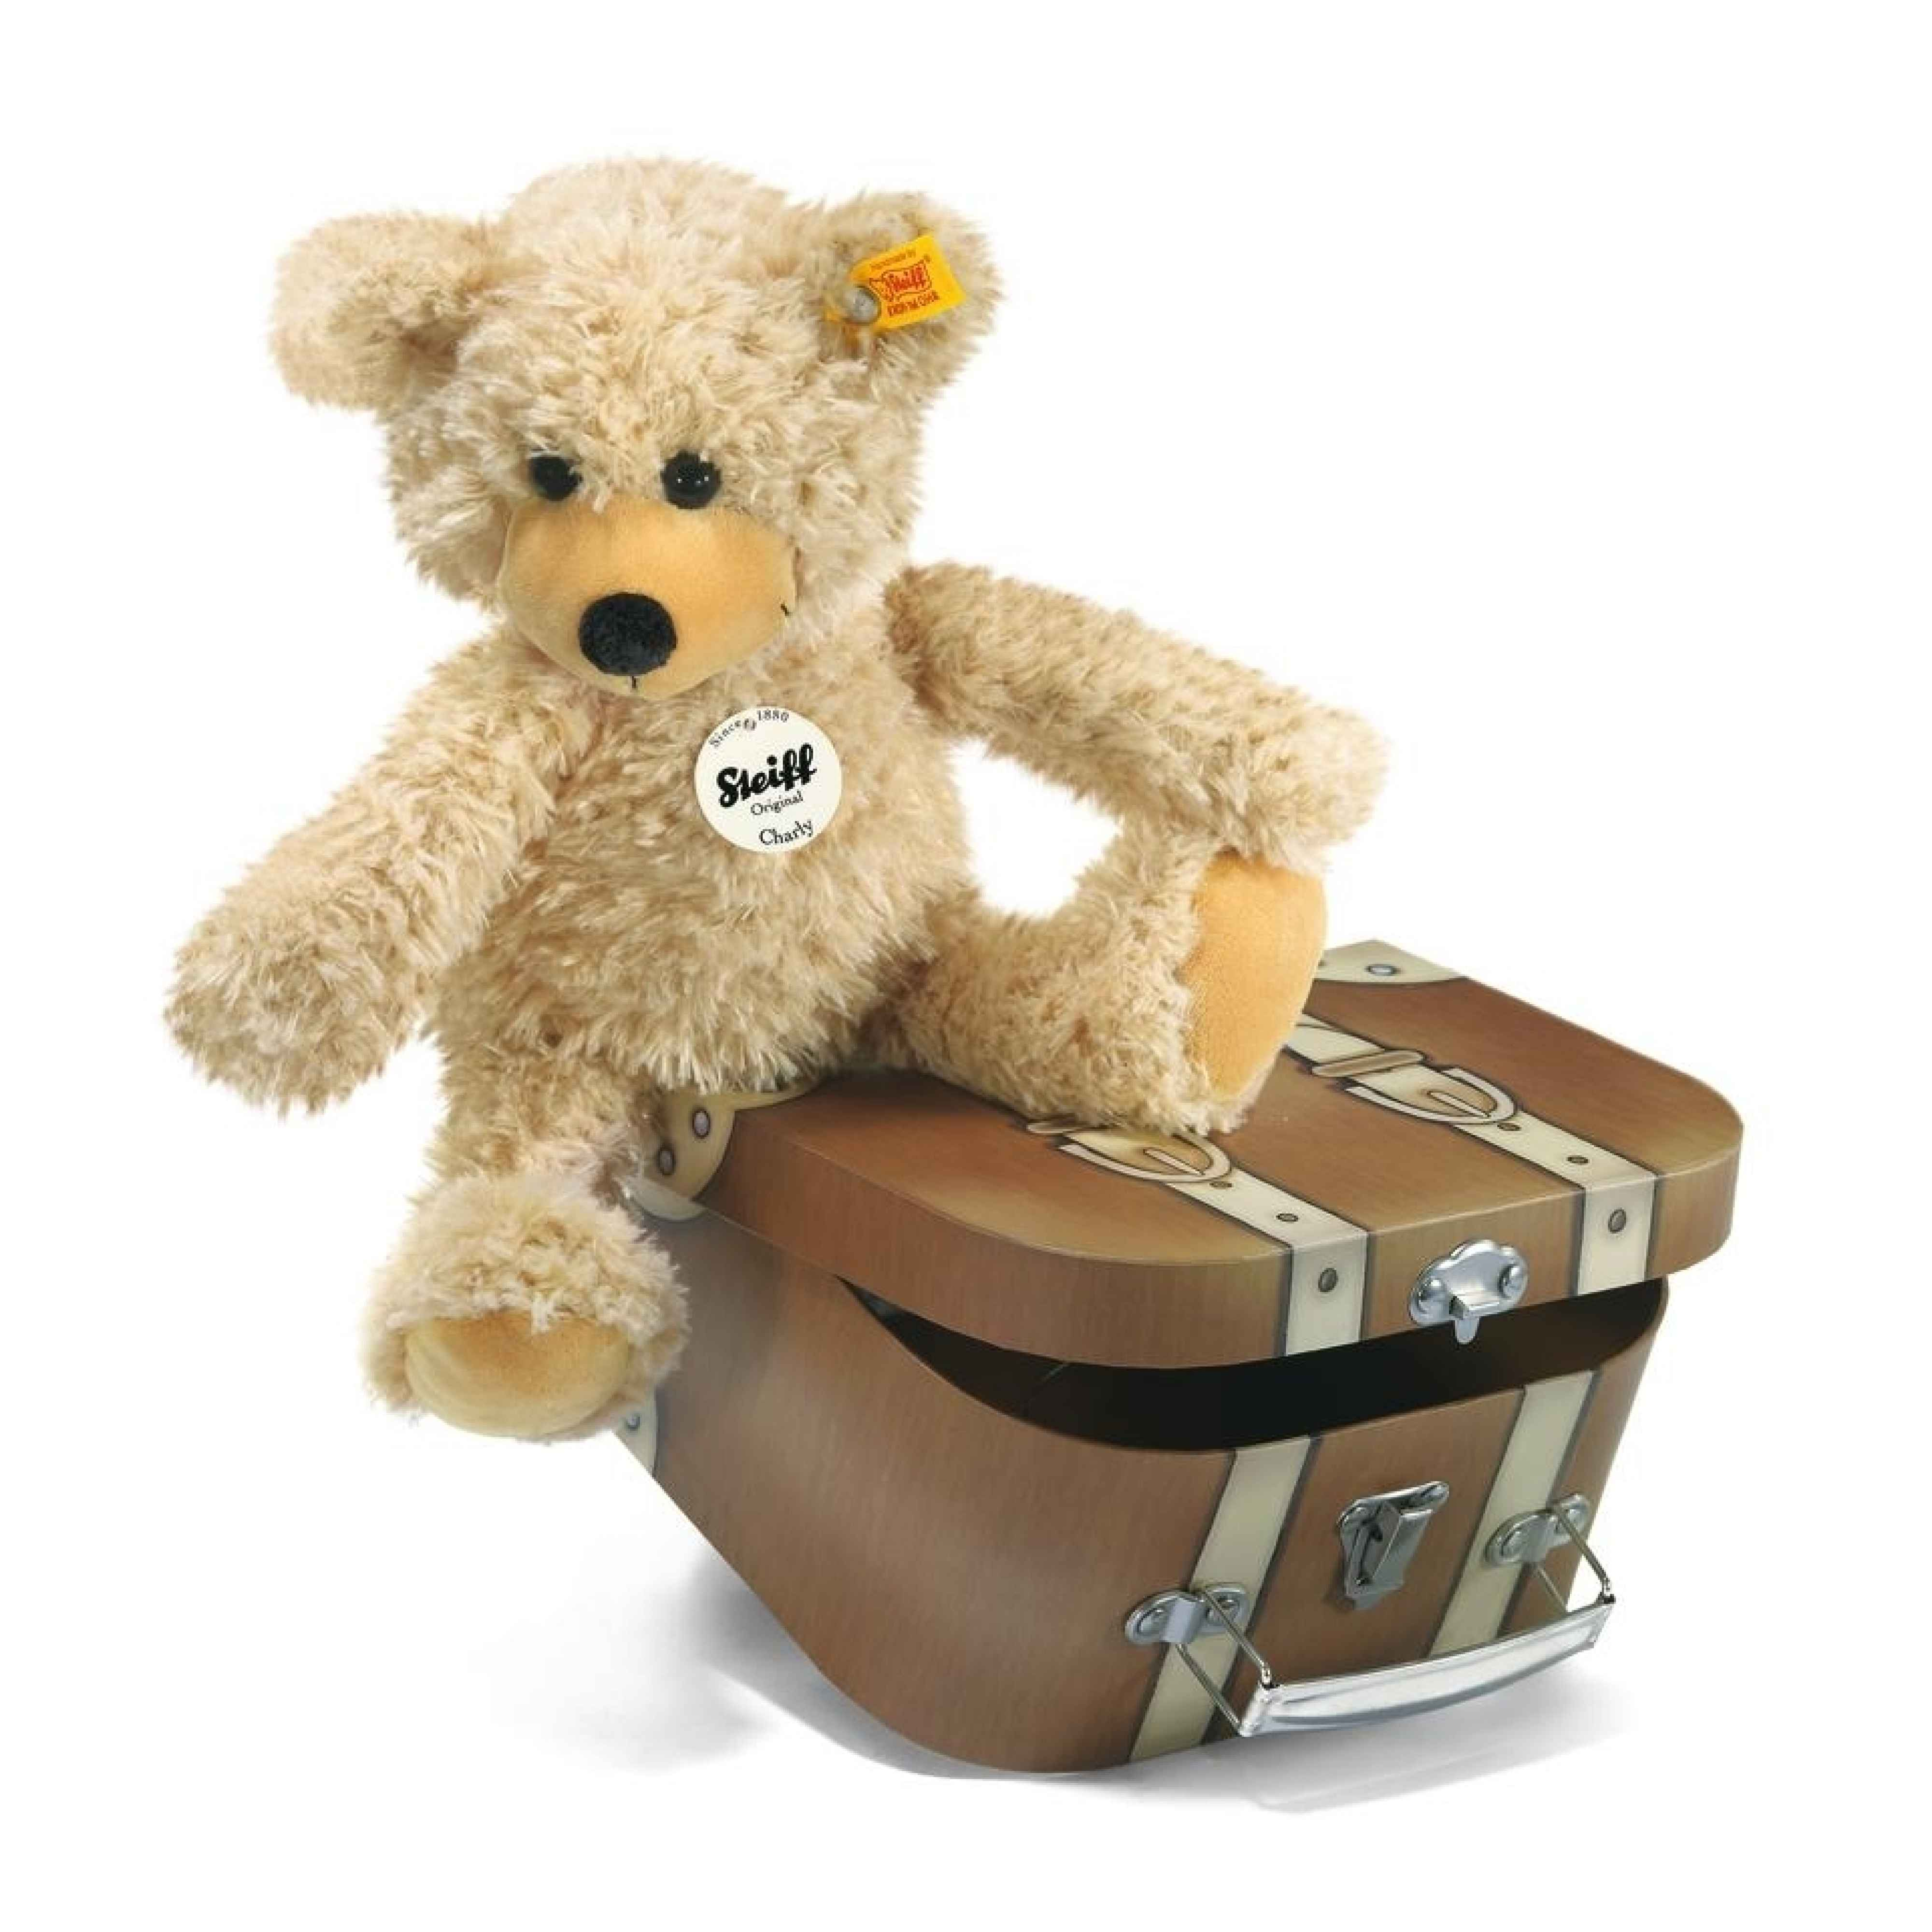 CHARLY DANGLING TEDDY BEAR IN SUITCASE